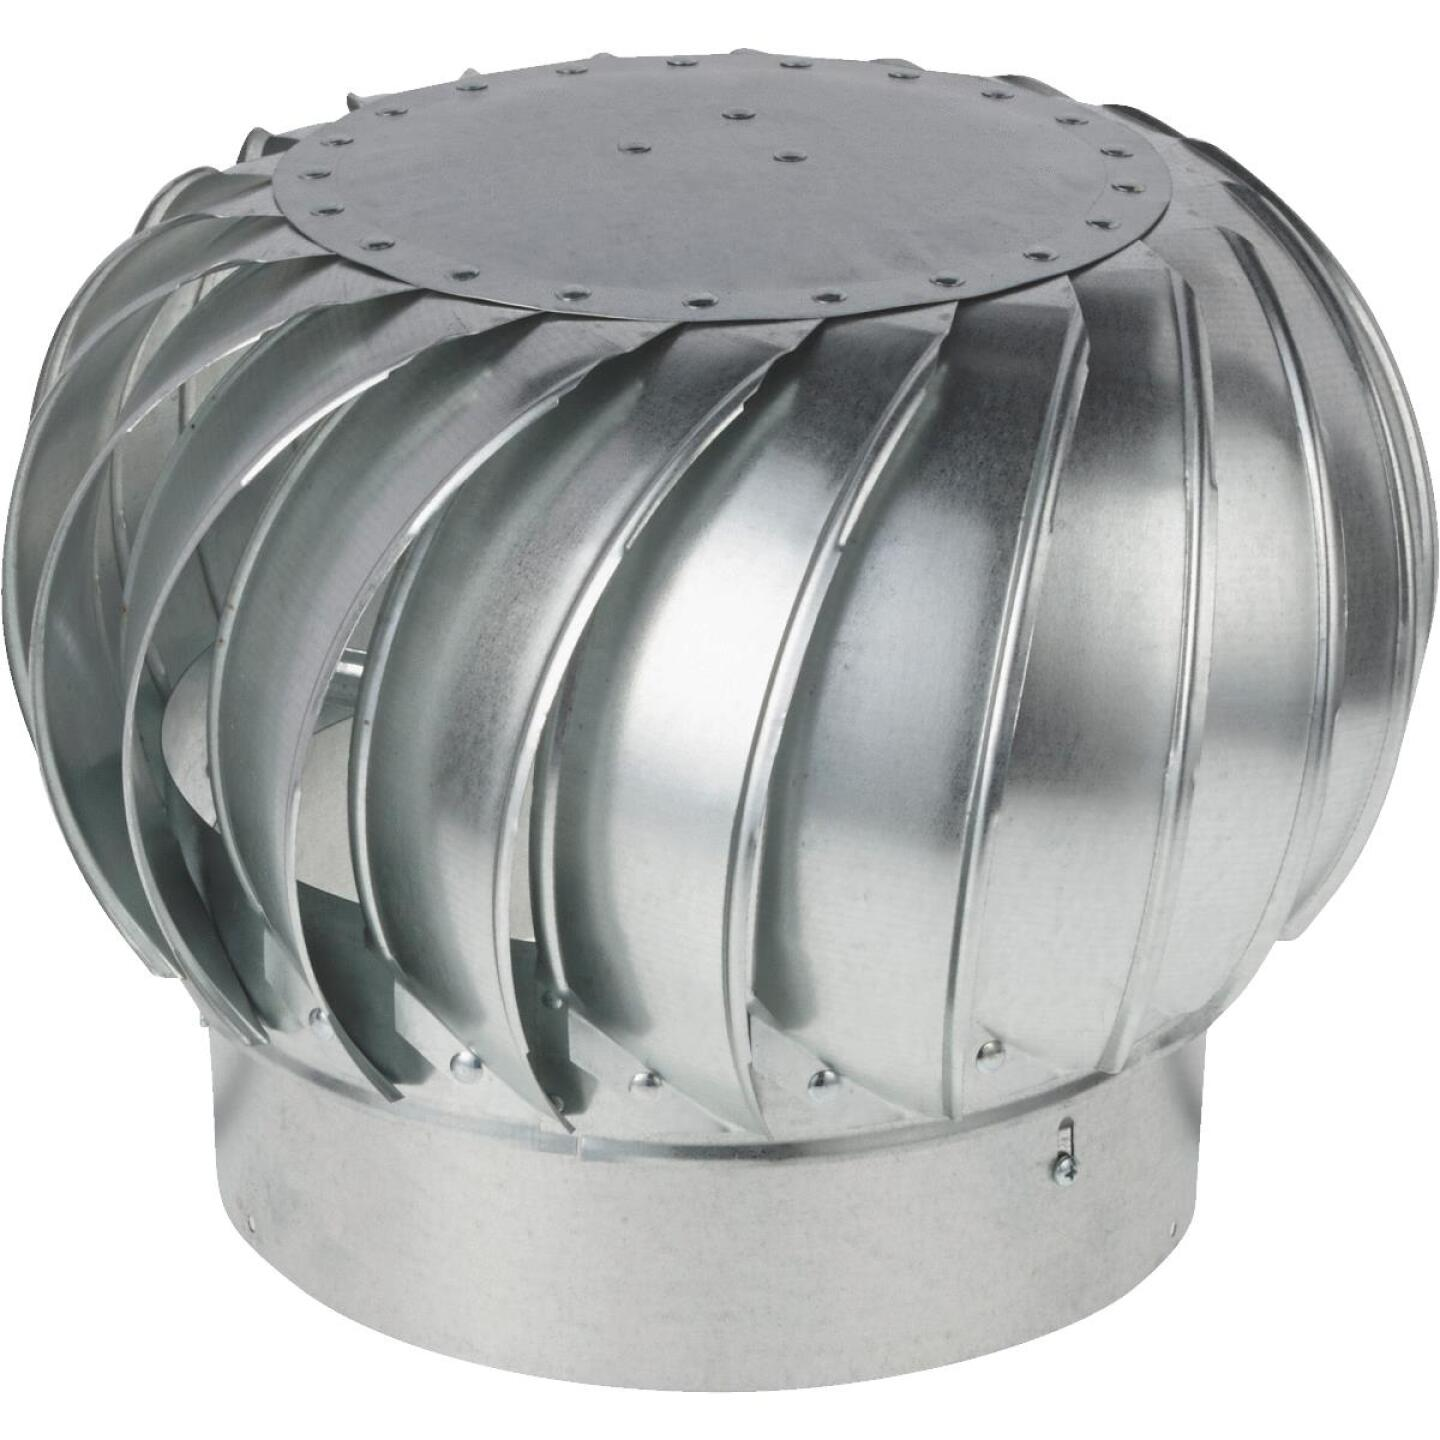 "Ventamatic Cool Attic 12"" Galvanized Steel Mill Wind Turbine Attic Vent Image 1"